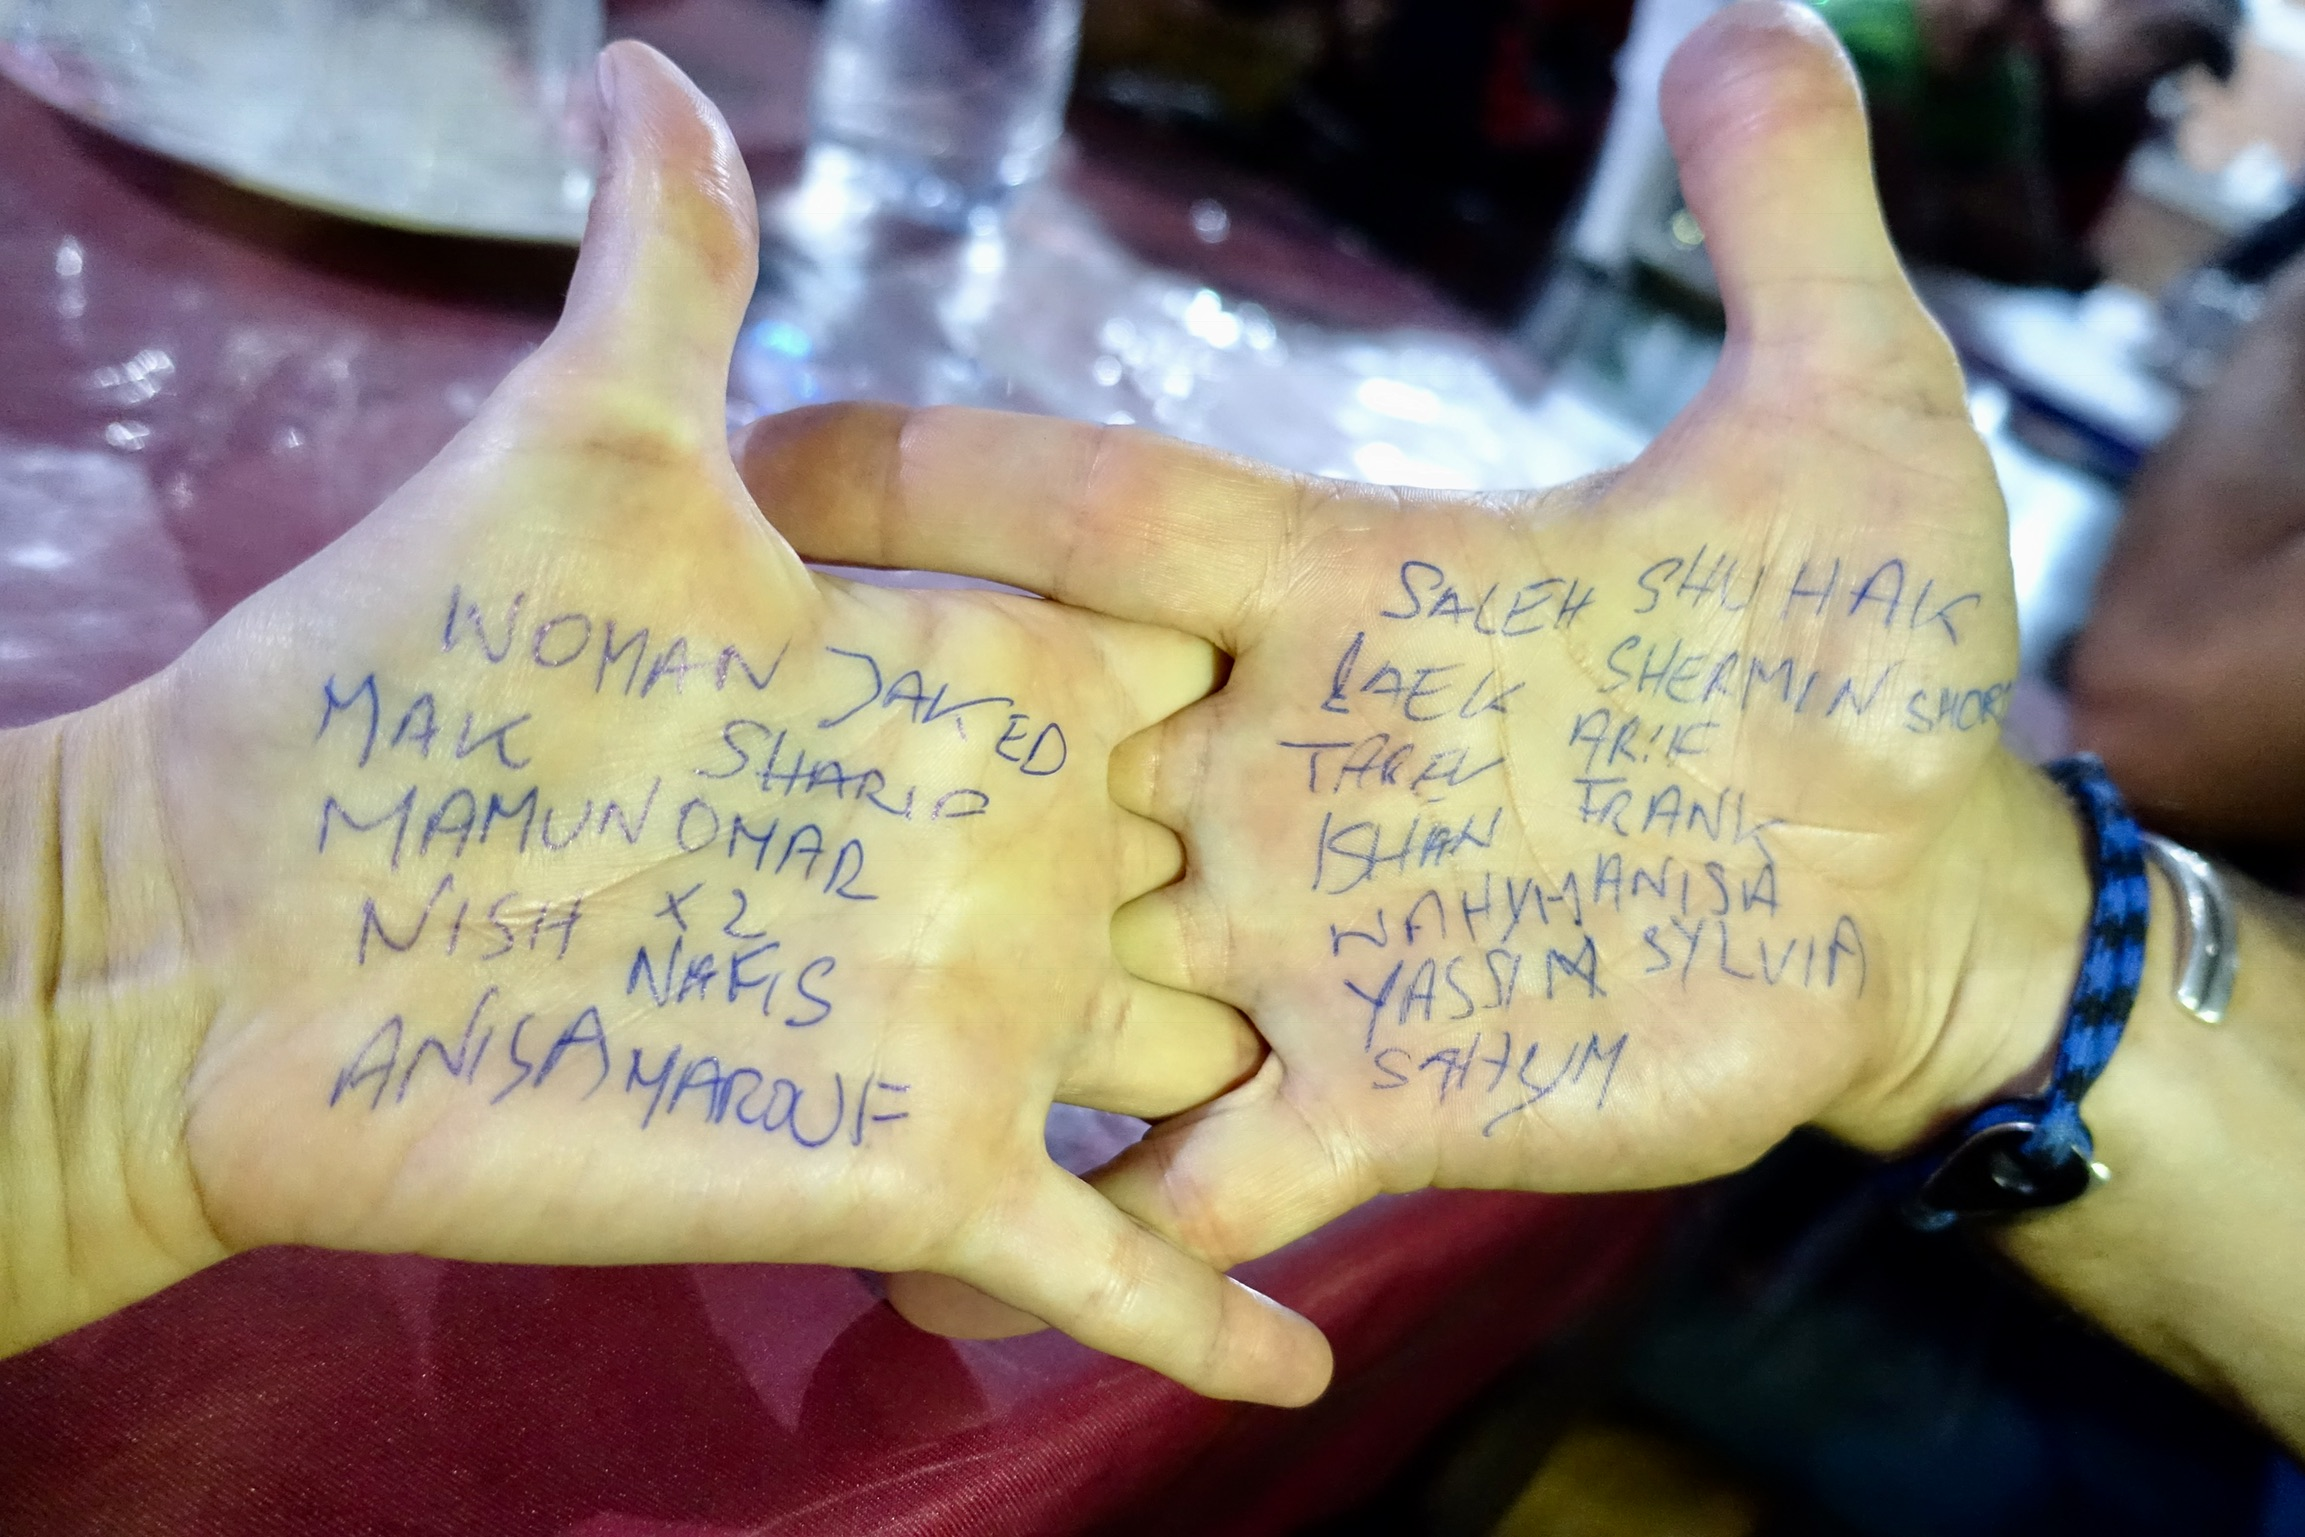 we wrote some SCC names on our hands so we would not forget them